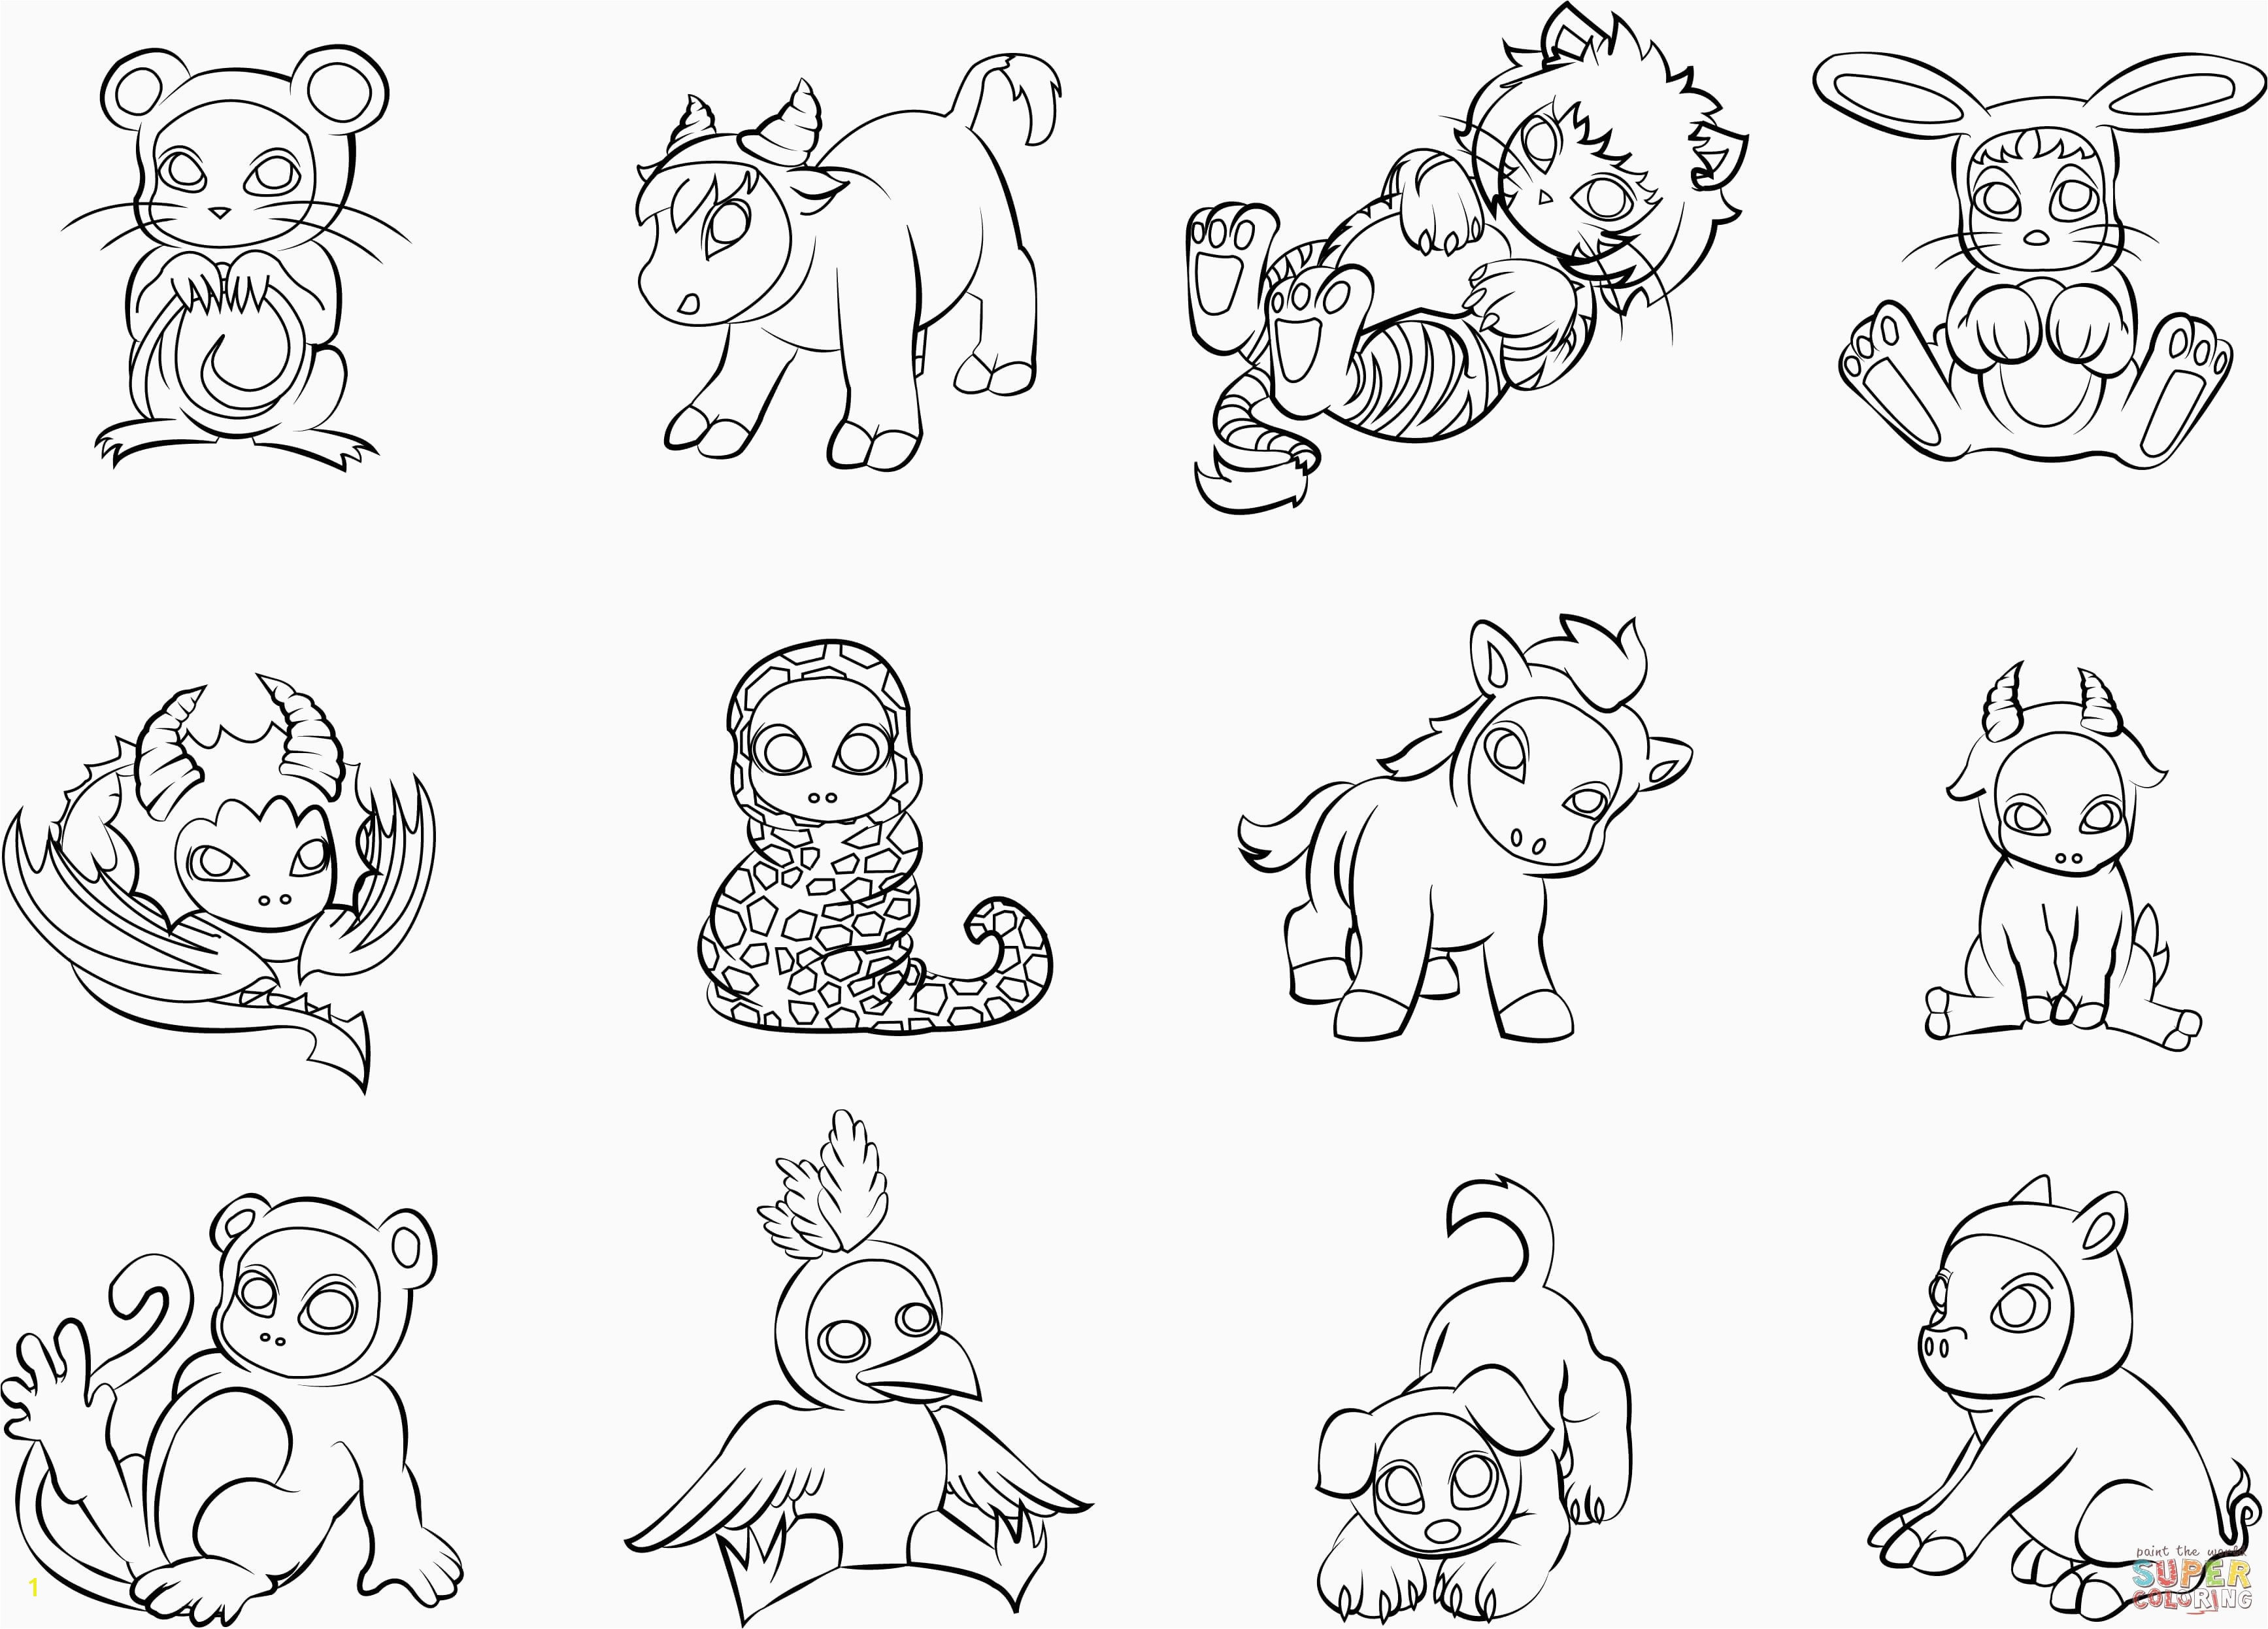 Fun Printable Coloring Pages Awesome New Od Dog Coloring Pages Free Colouring Pages